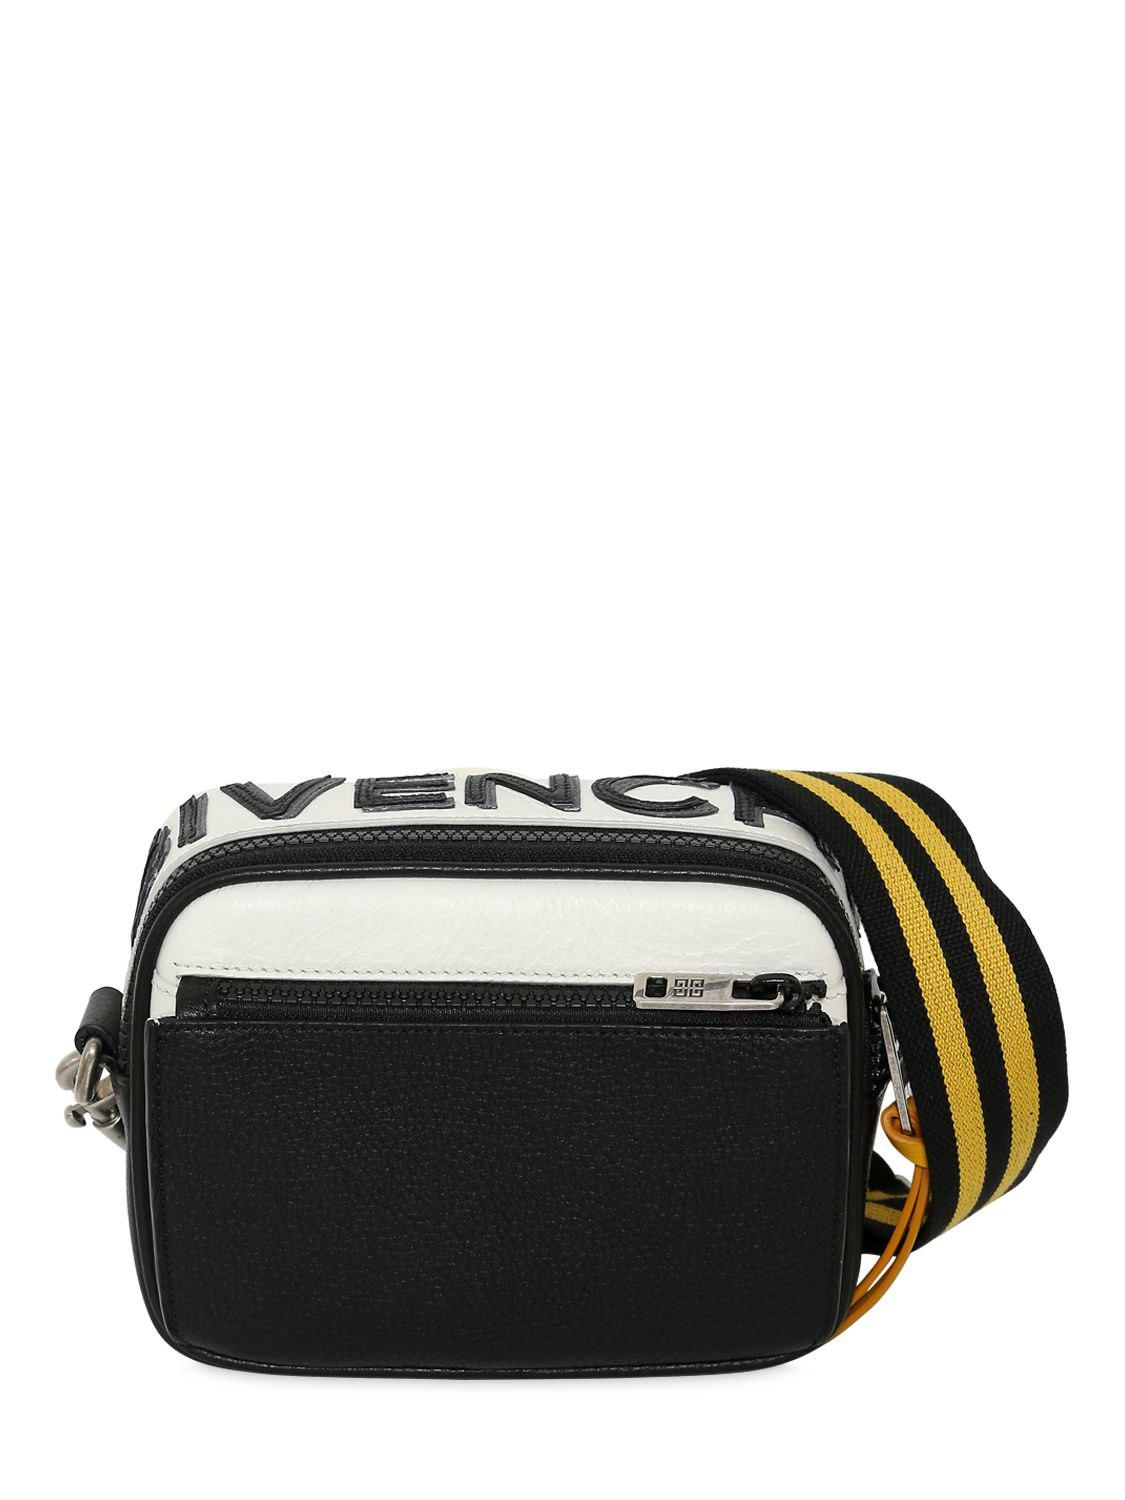 e83ca206 Givenchy Reverse Logo Leather Crossbody Bag in Black for Men - Lyst